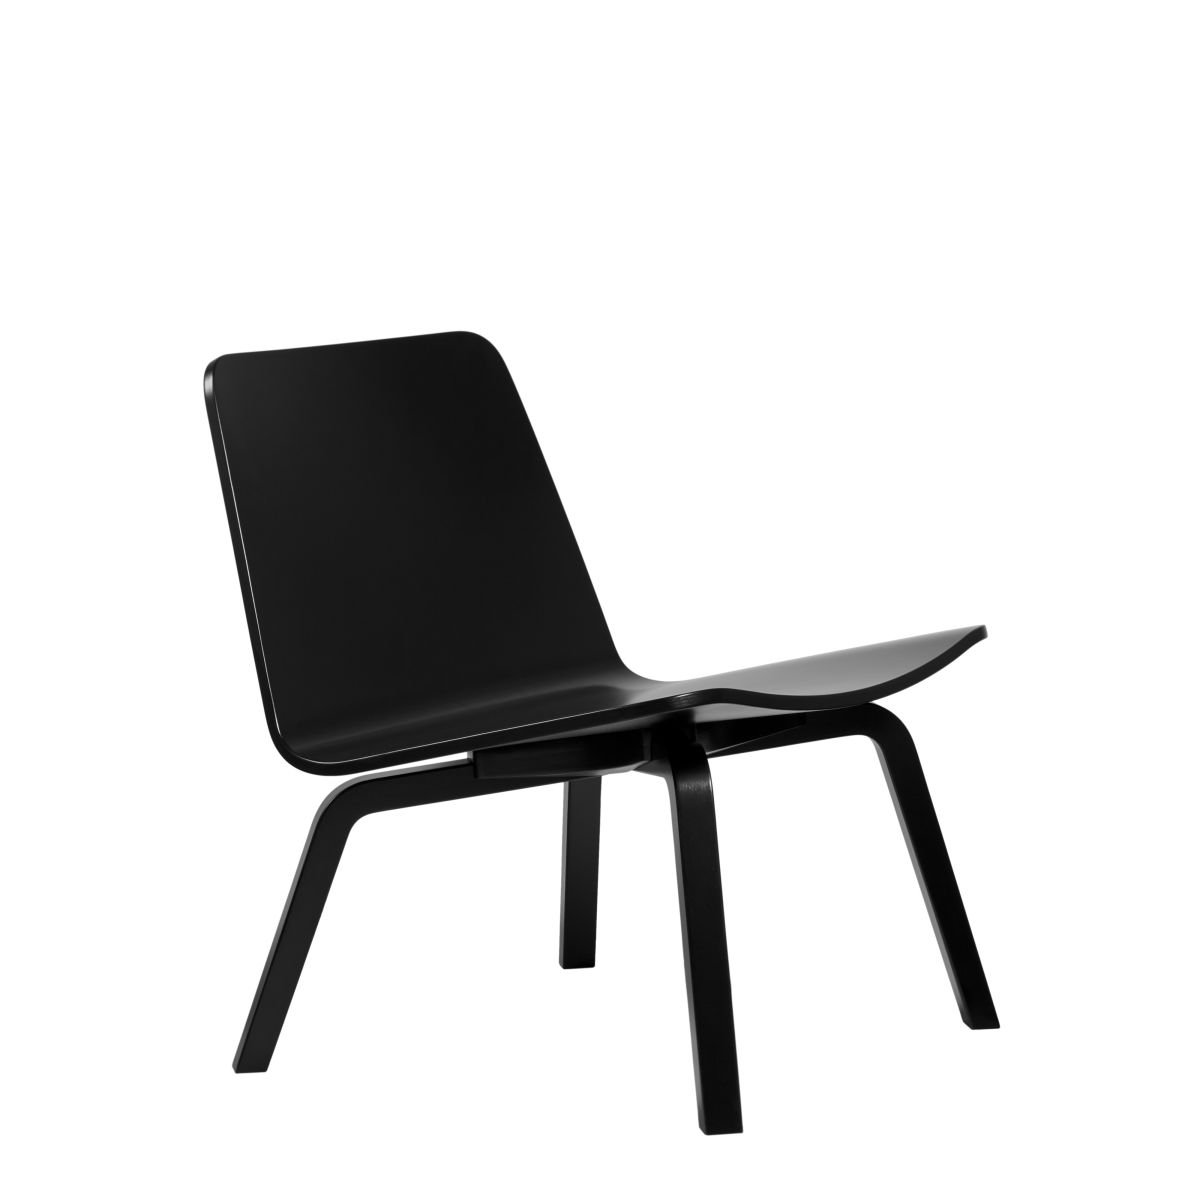 Lounge Chair HK002 black lacquer_WEB